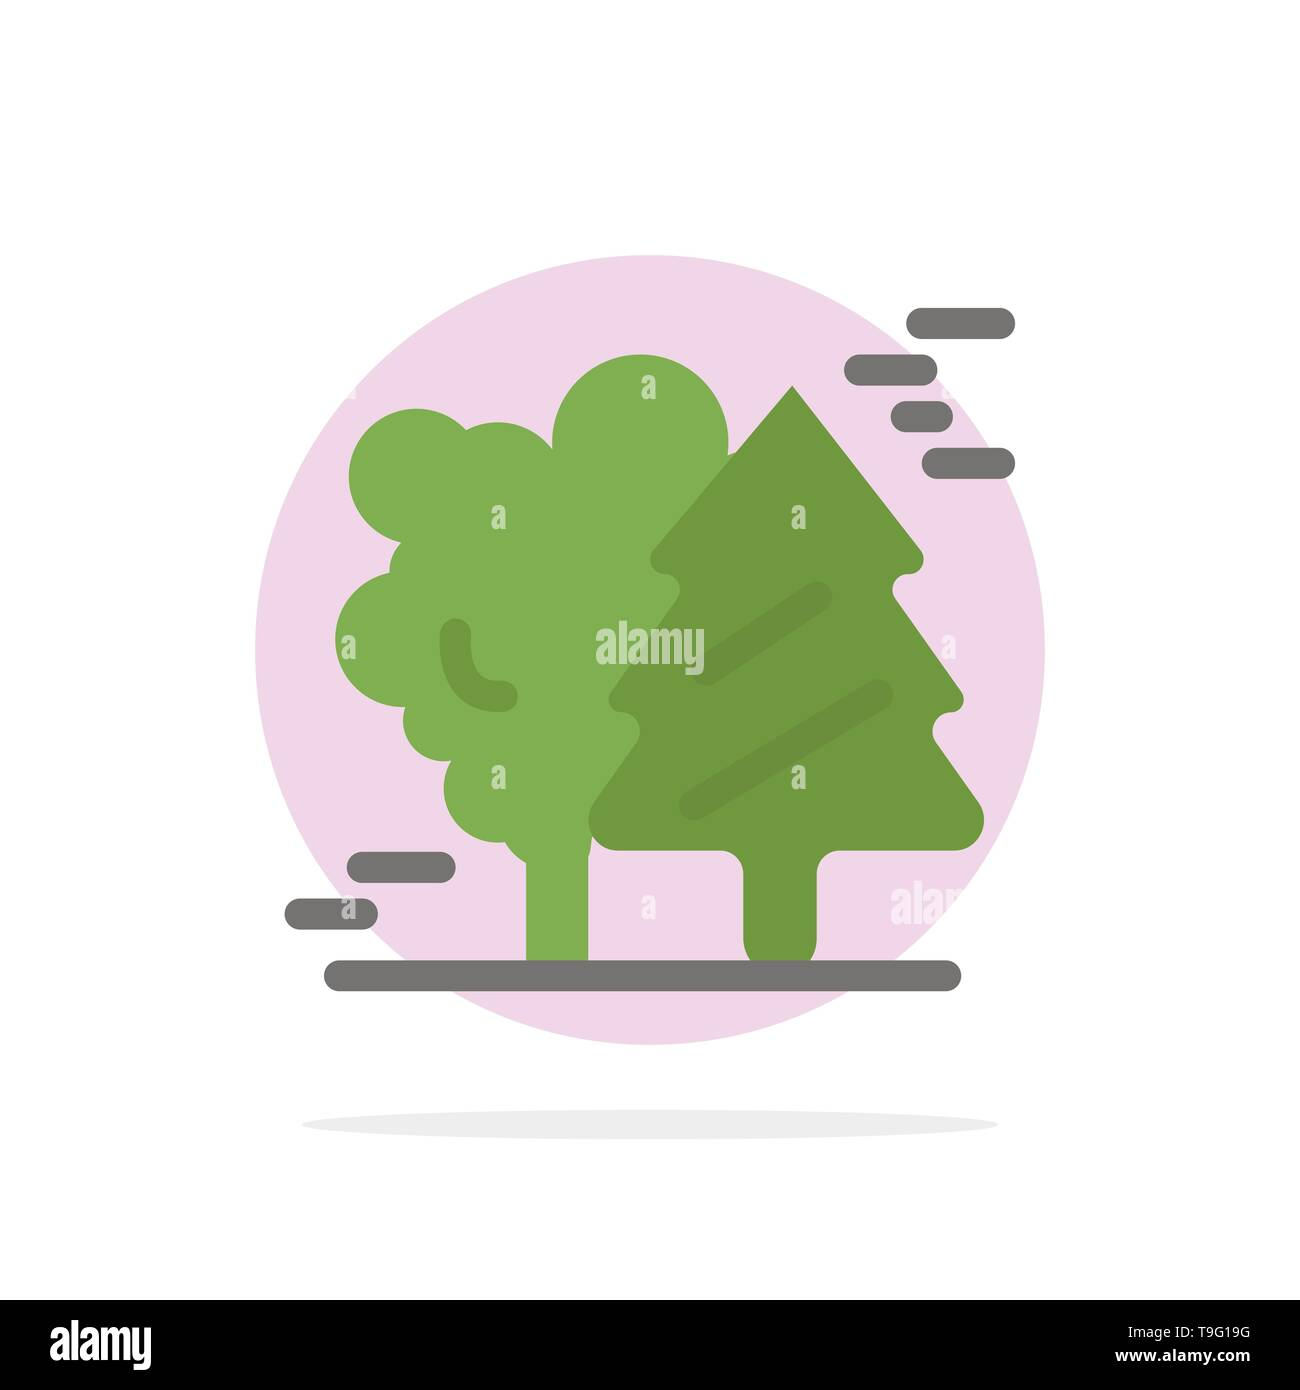 Alpine, Arctic, Canada, Pine Trees, Scandinavia Abstract Circle Background Flat color Icon - Stock Image